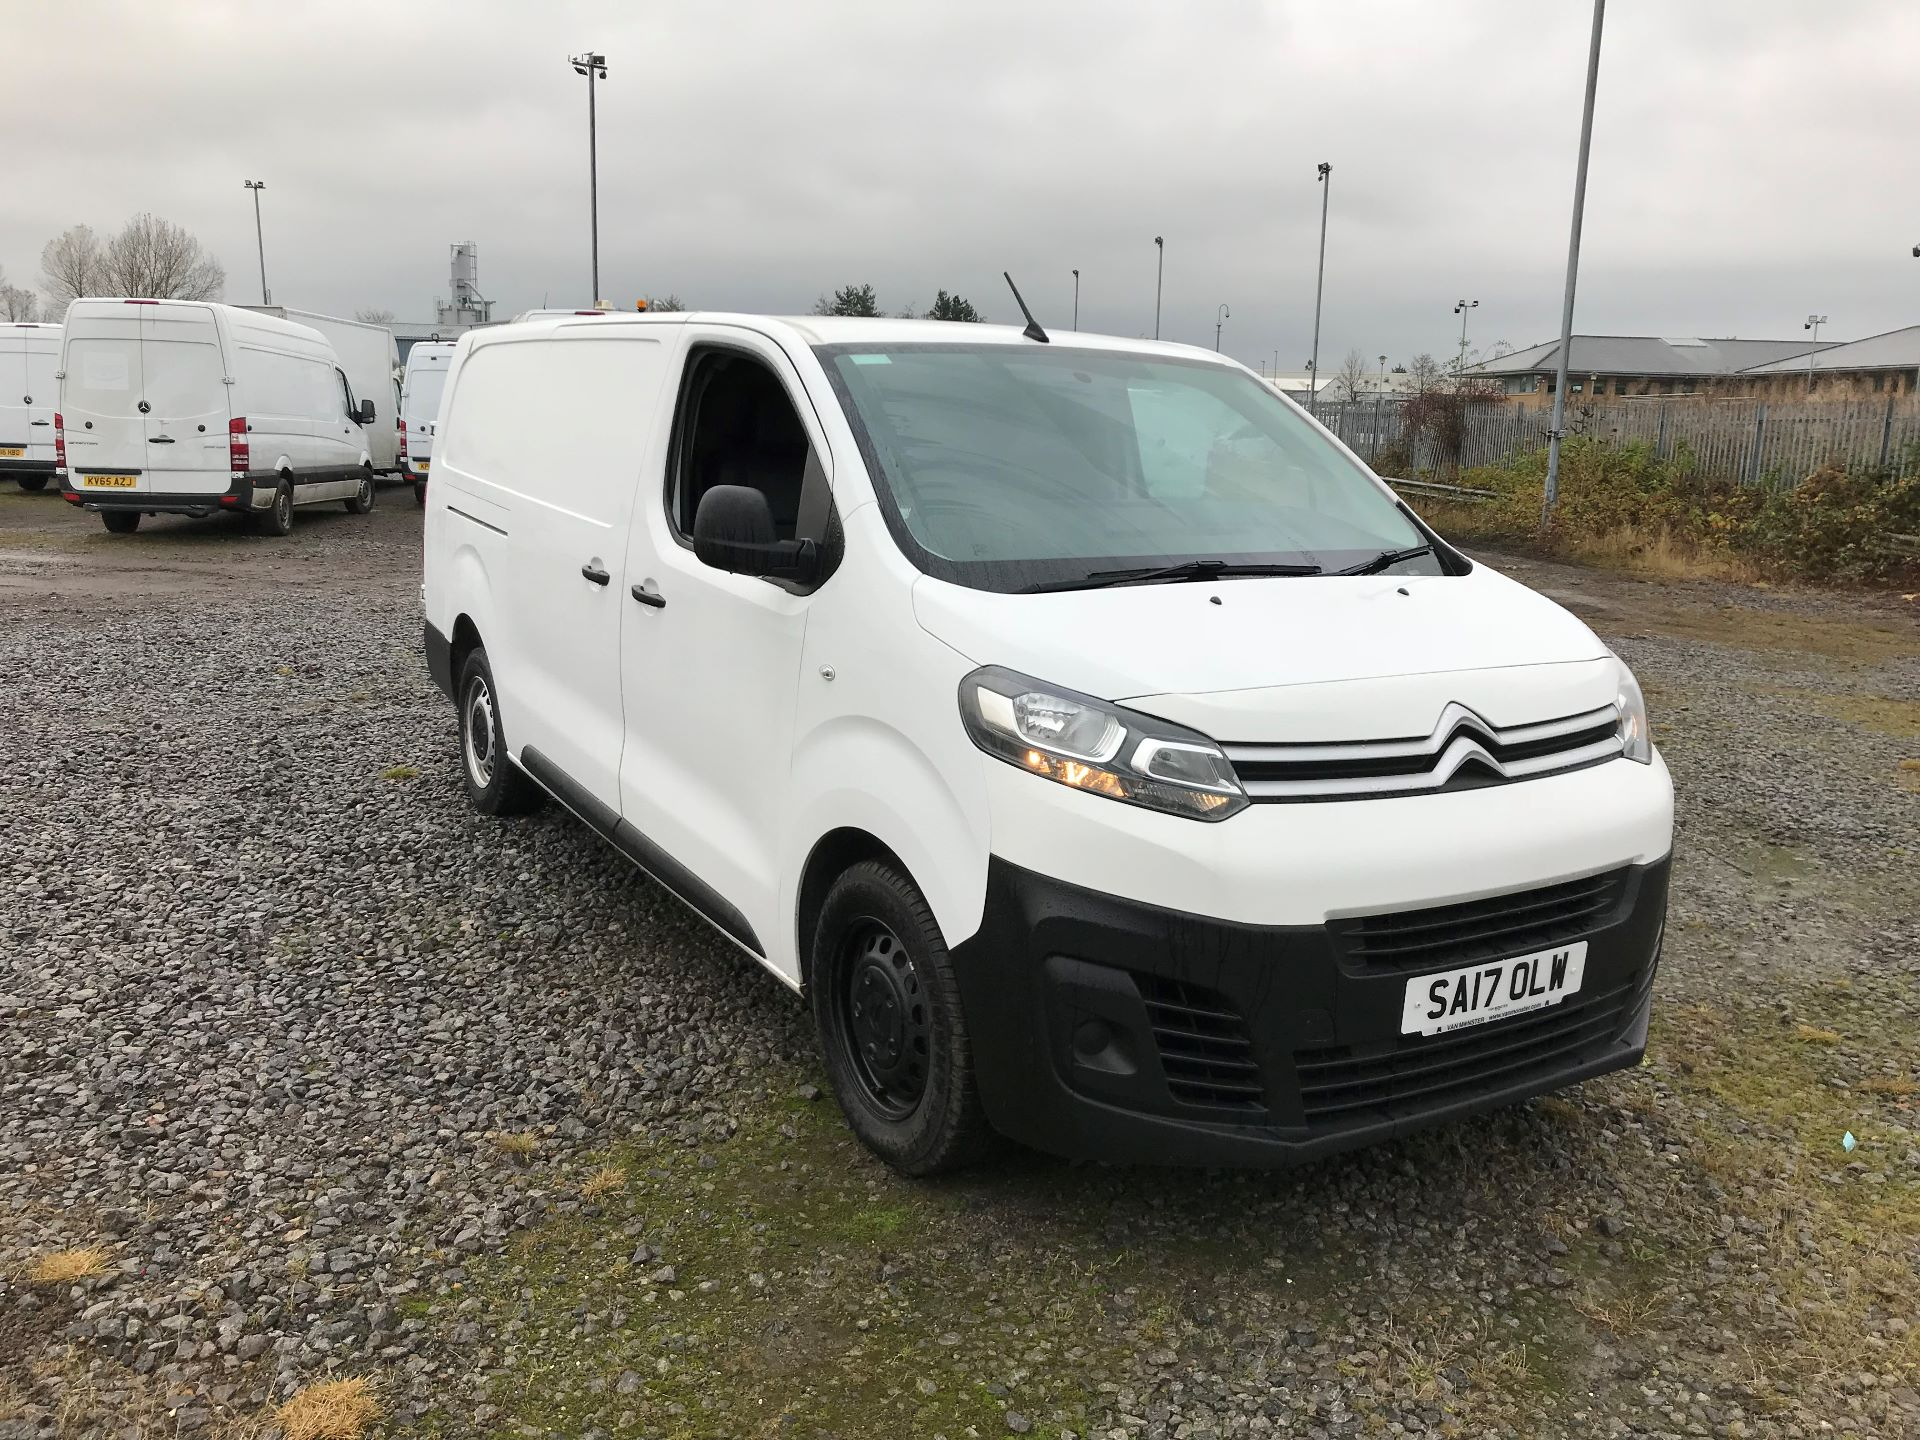 2017 Citroen Dispatch 1400 2.0 Bluehdi 120 Van Enterprise (SA17OLW)